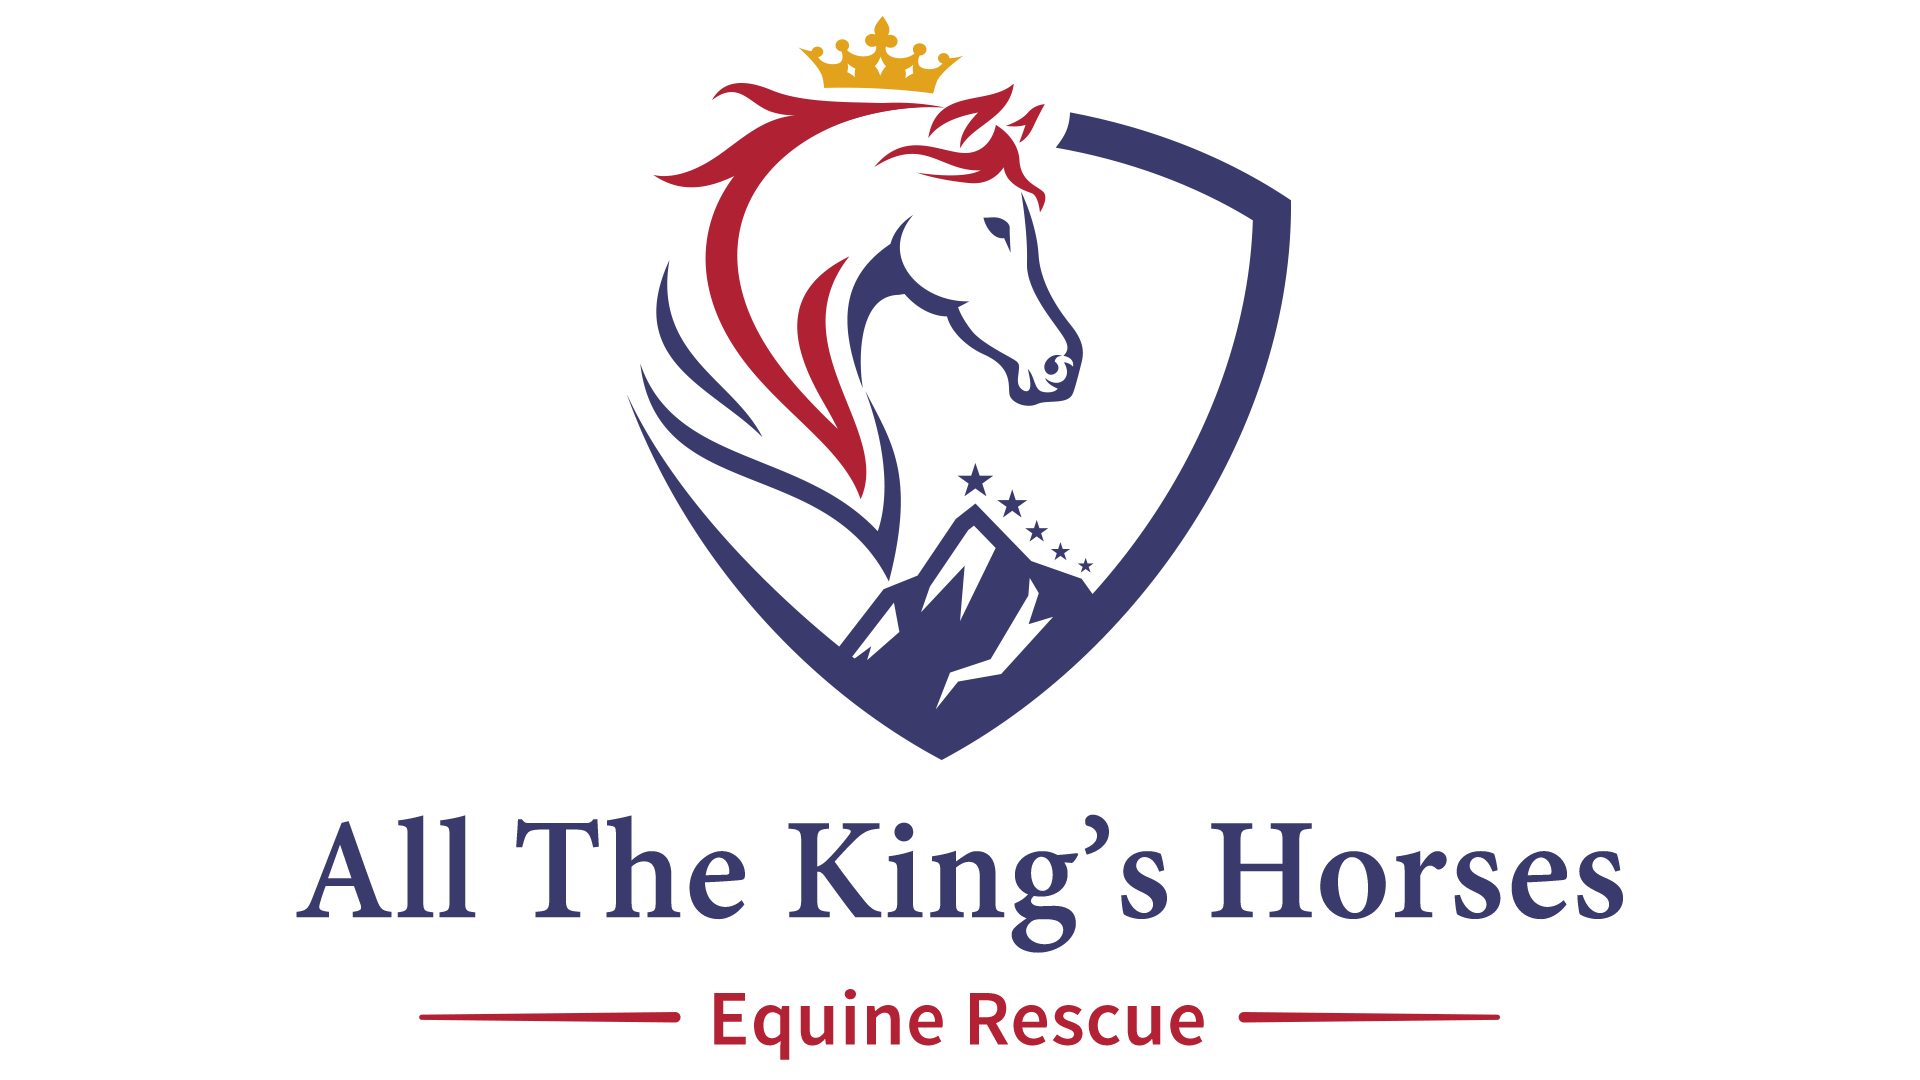 All The Kings Horses Equine Rescue Guidestar Profile